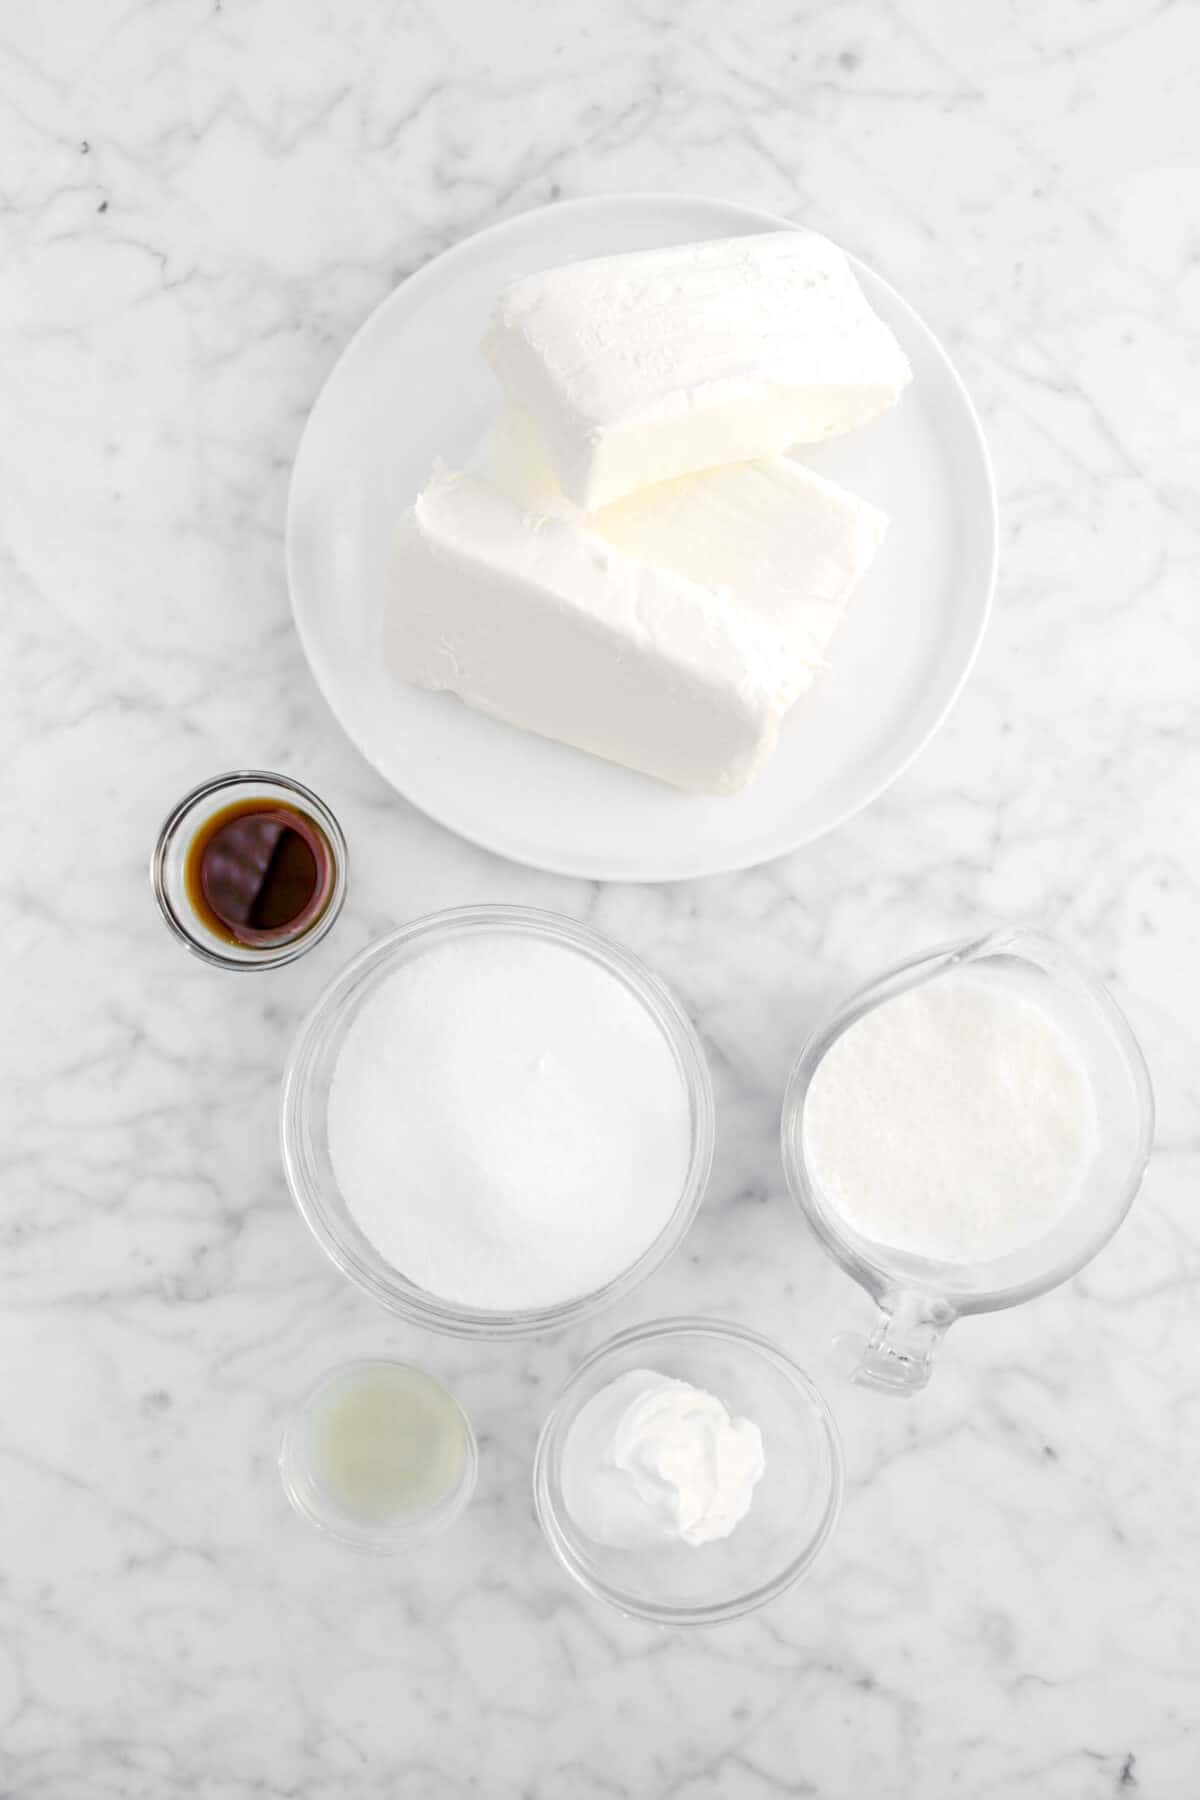 cream cheese, vanilla, sugar, milk, lemon juice, and sour cream in glass bowls on marble counter